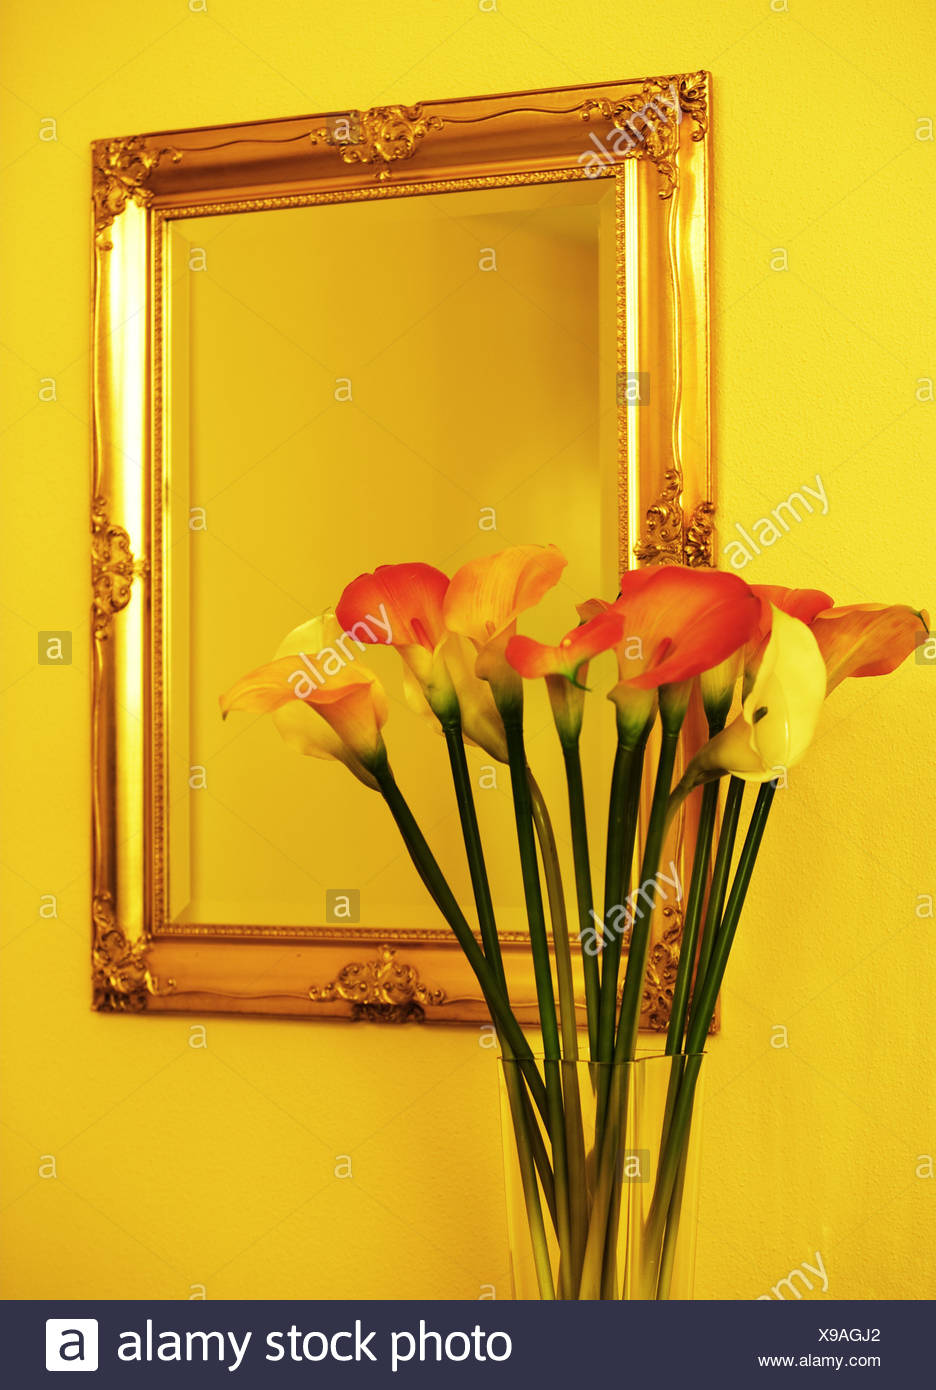 Wall-mirrors vase flowers Zantedeschien wall mirrors hall-mirrors ...